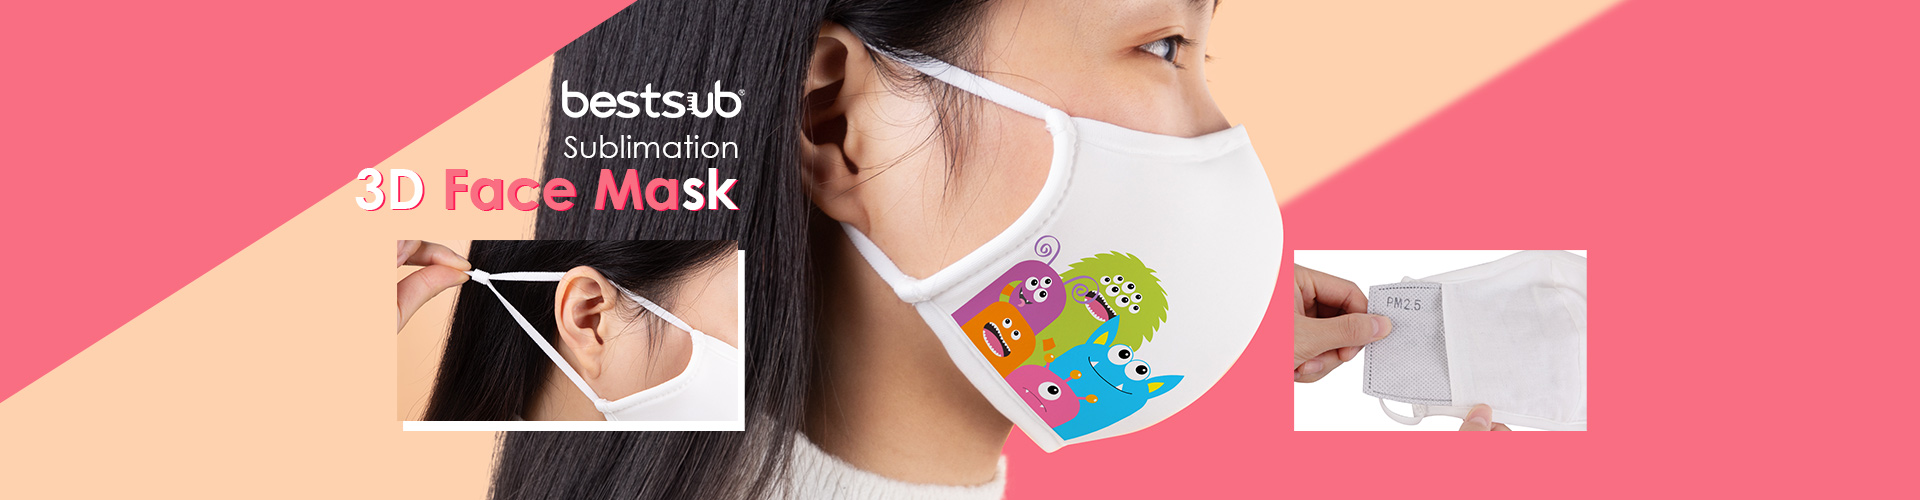 2020-4-26_Sublimation_3D_Face_Mask_new_web